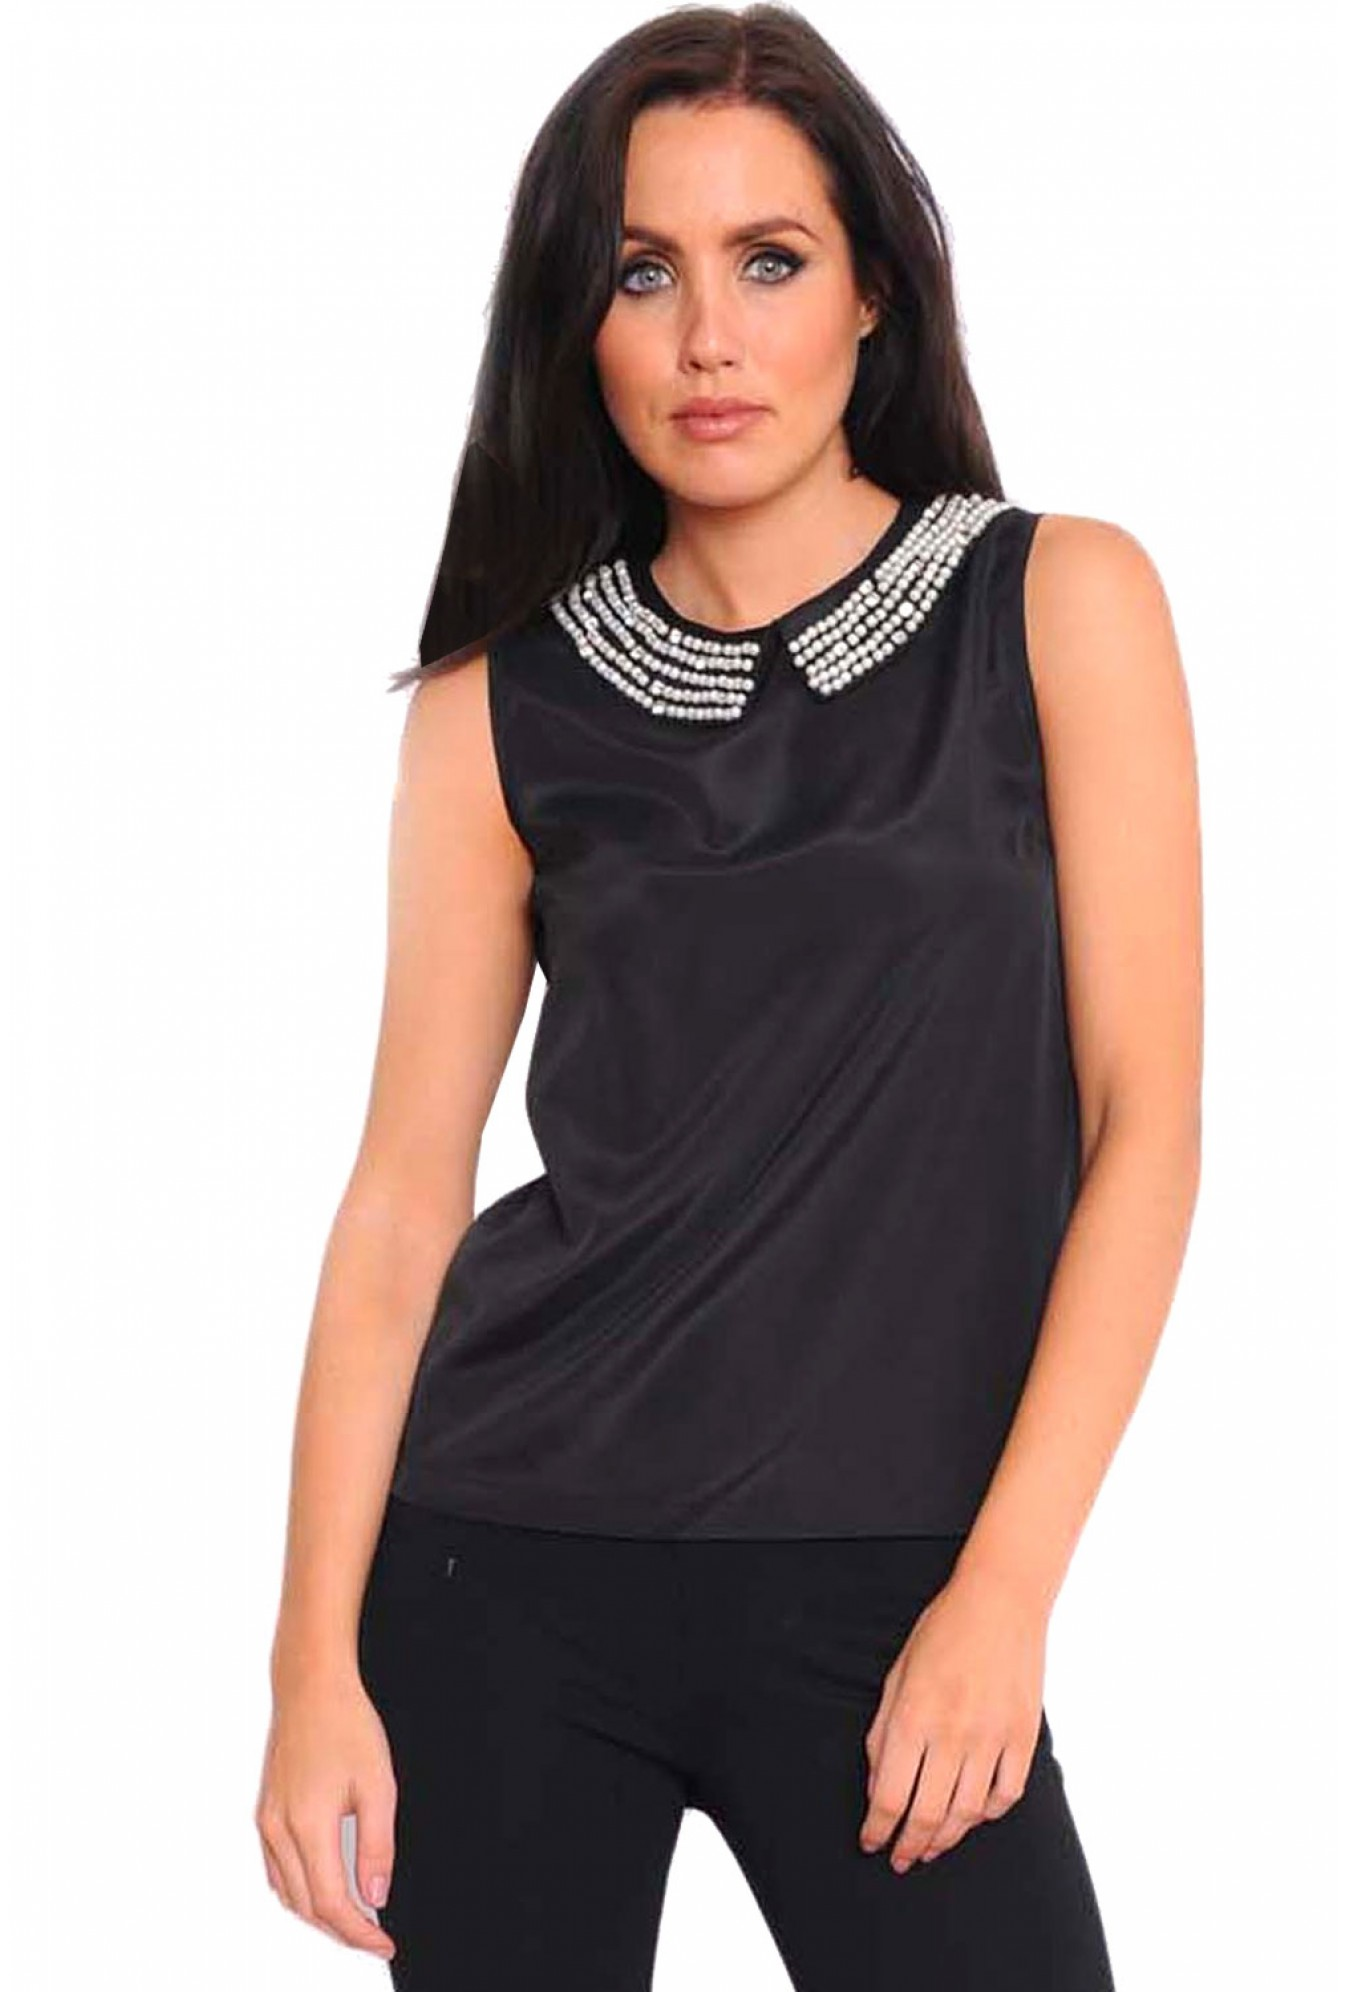 b90b4b545b4 More Views. Diana Pearl Embellished Collar Top in Black